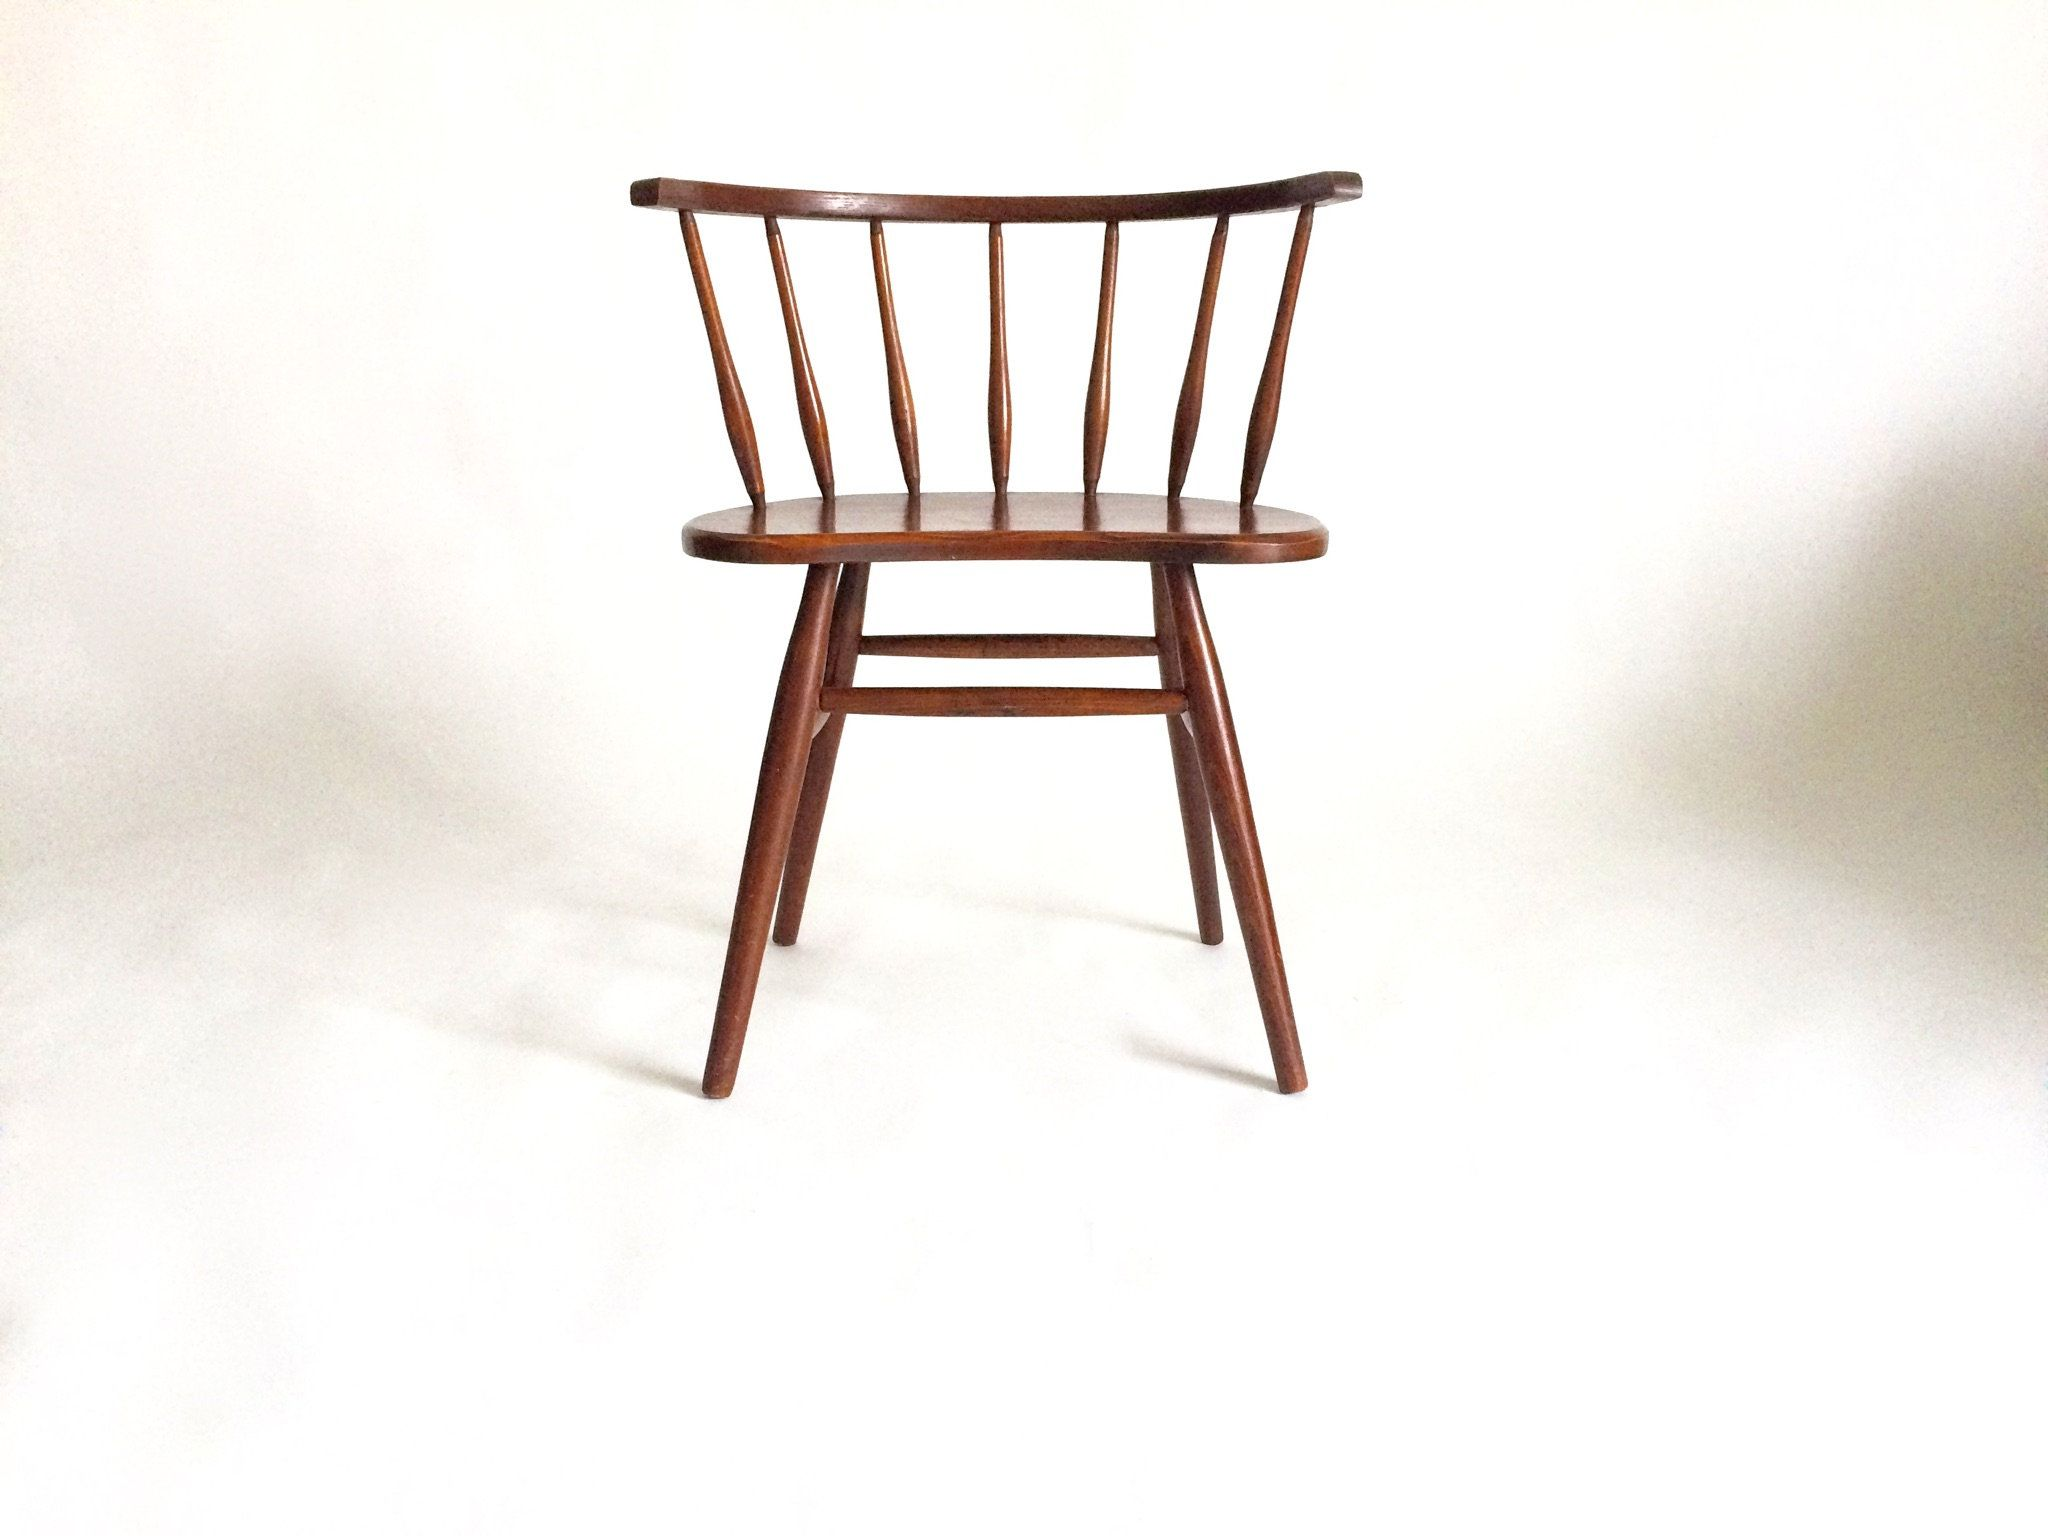 Vintage Mid Century Wood Spindle Chair Danish Modern By Patinadetroit On Etsy Danish Modern Chairs Spindle Chair Chair